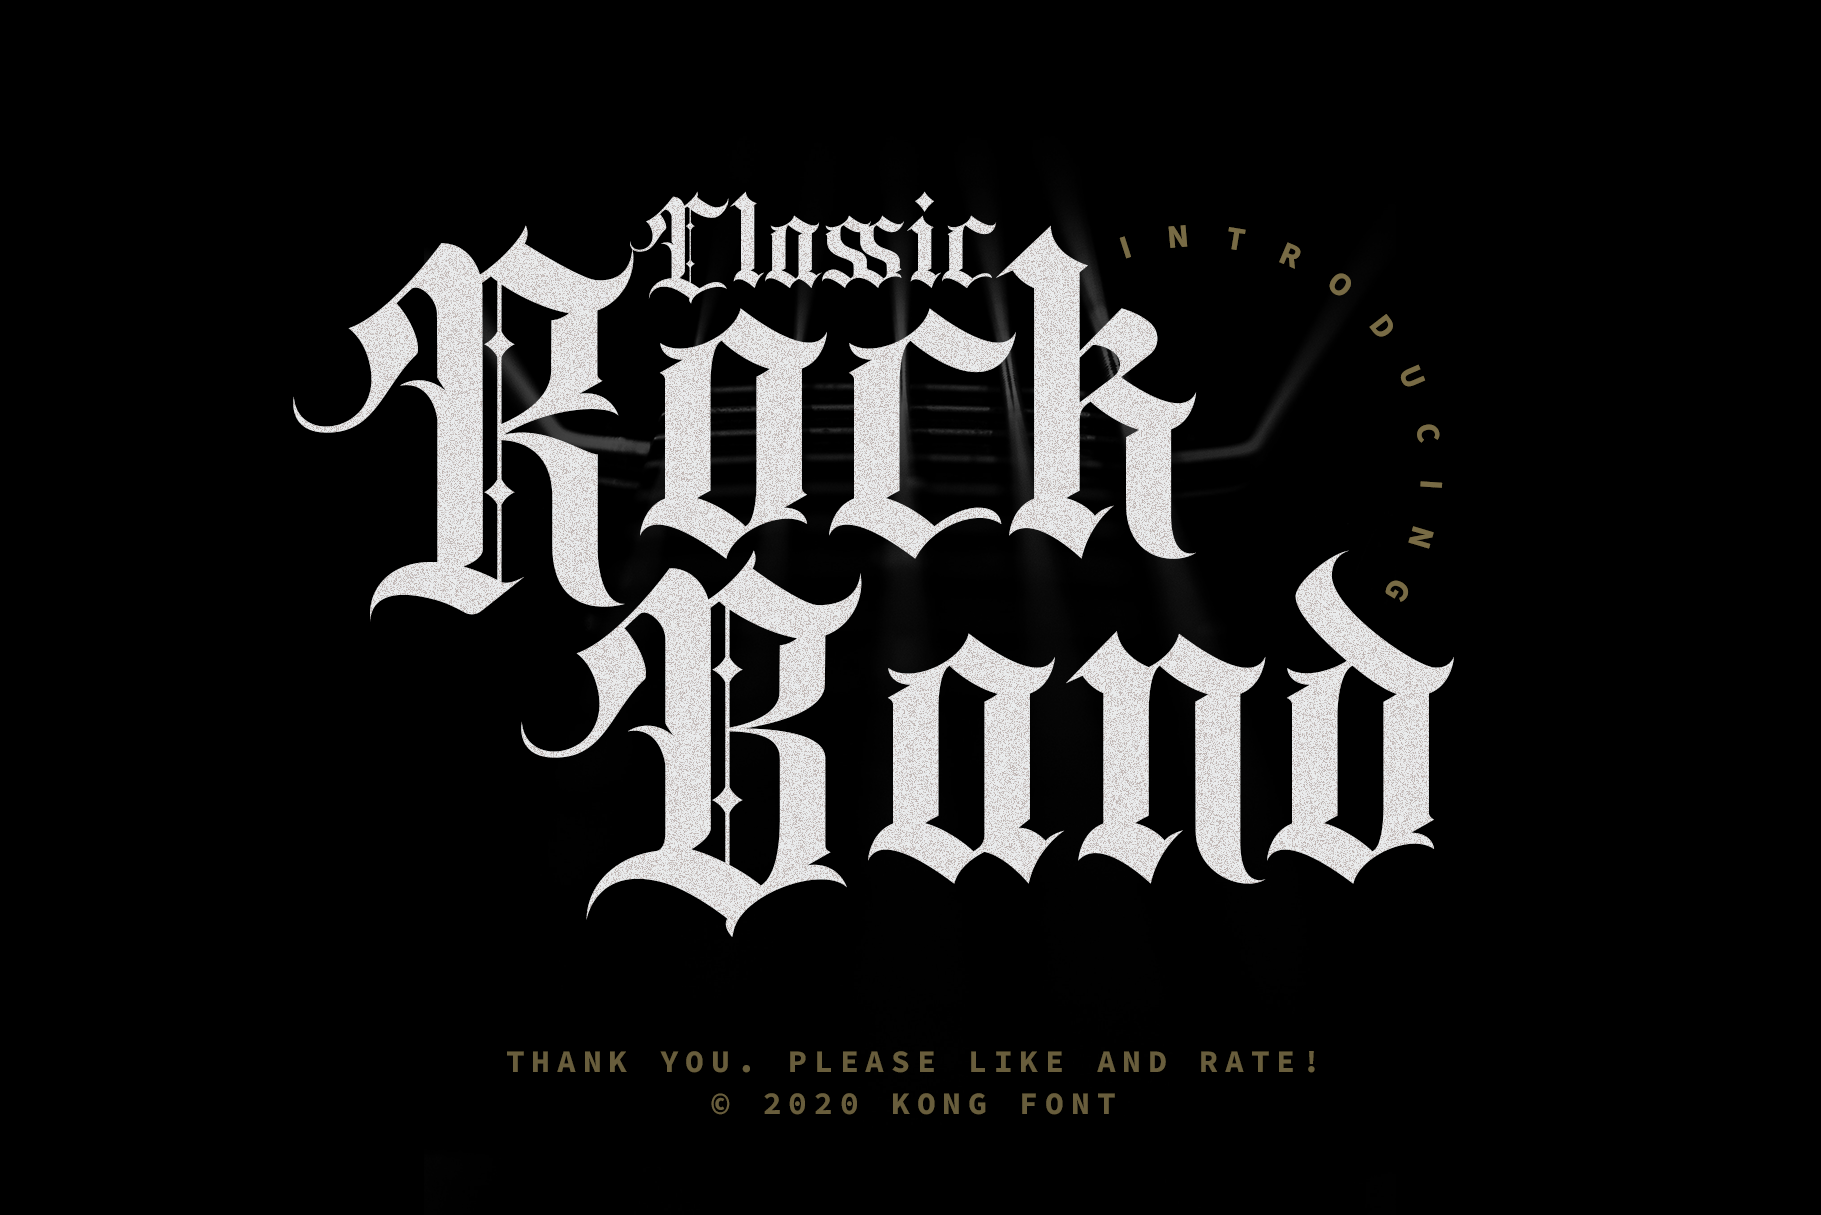 Classic Rock Band Ad Ad Advertisement Band Rock Classic In 2020 Vintage Lettering Classic Rock Bands Classic Rock